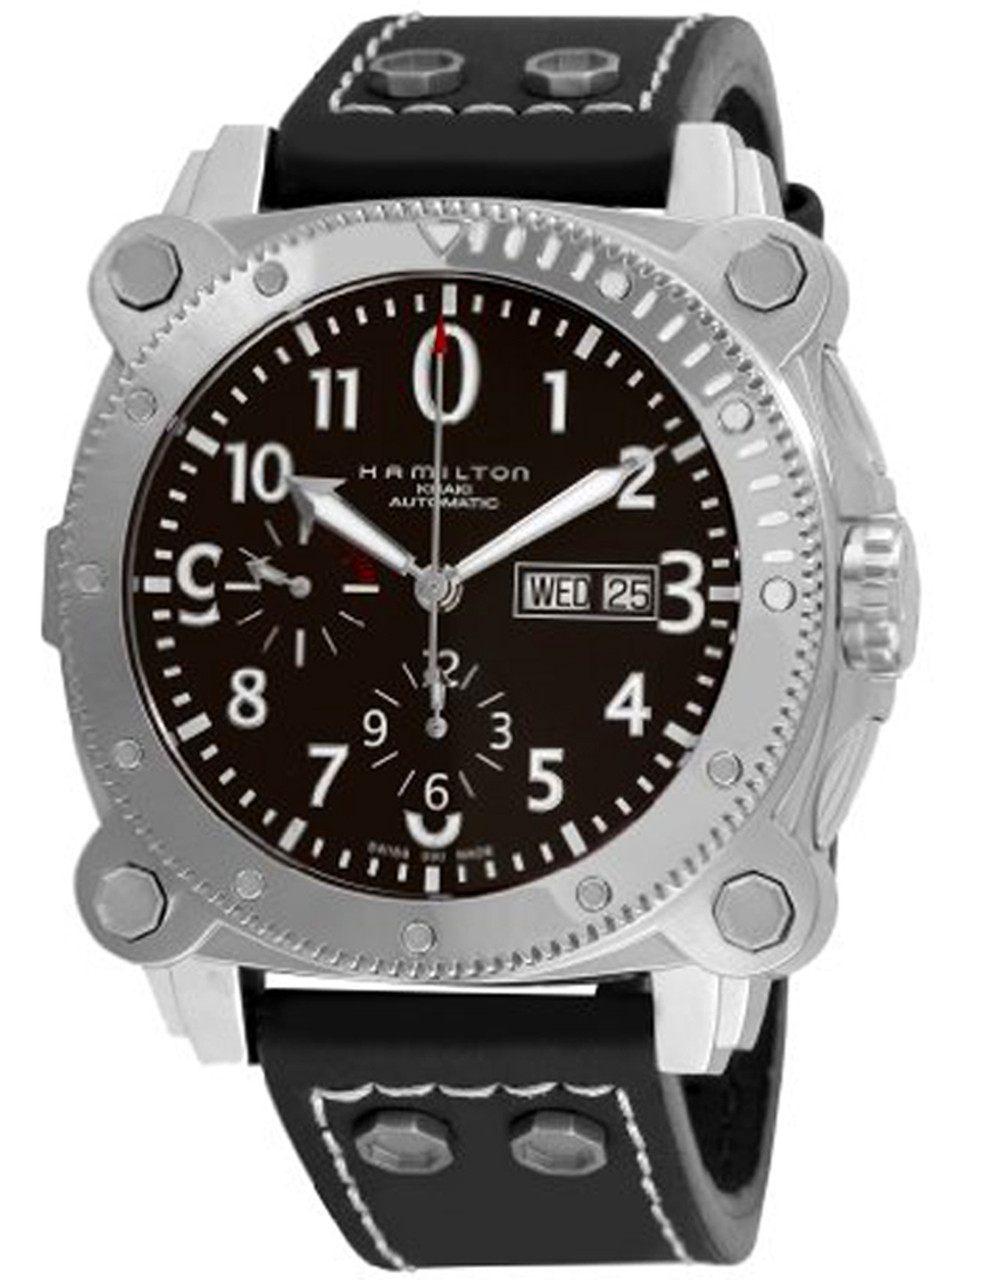 Brand new and authentic hamilton watches for men on sale for Hamilton dive watch